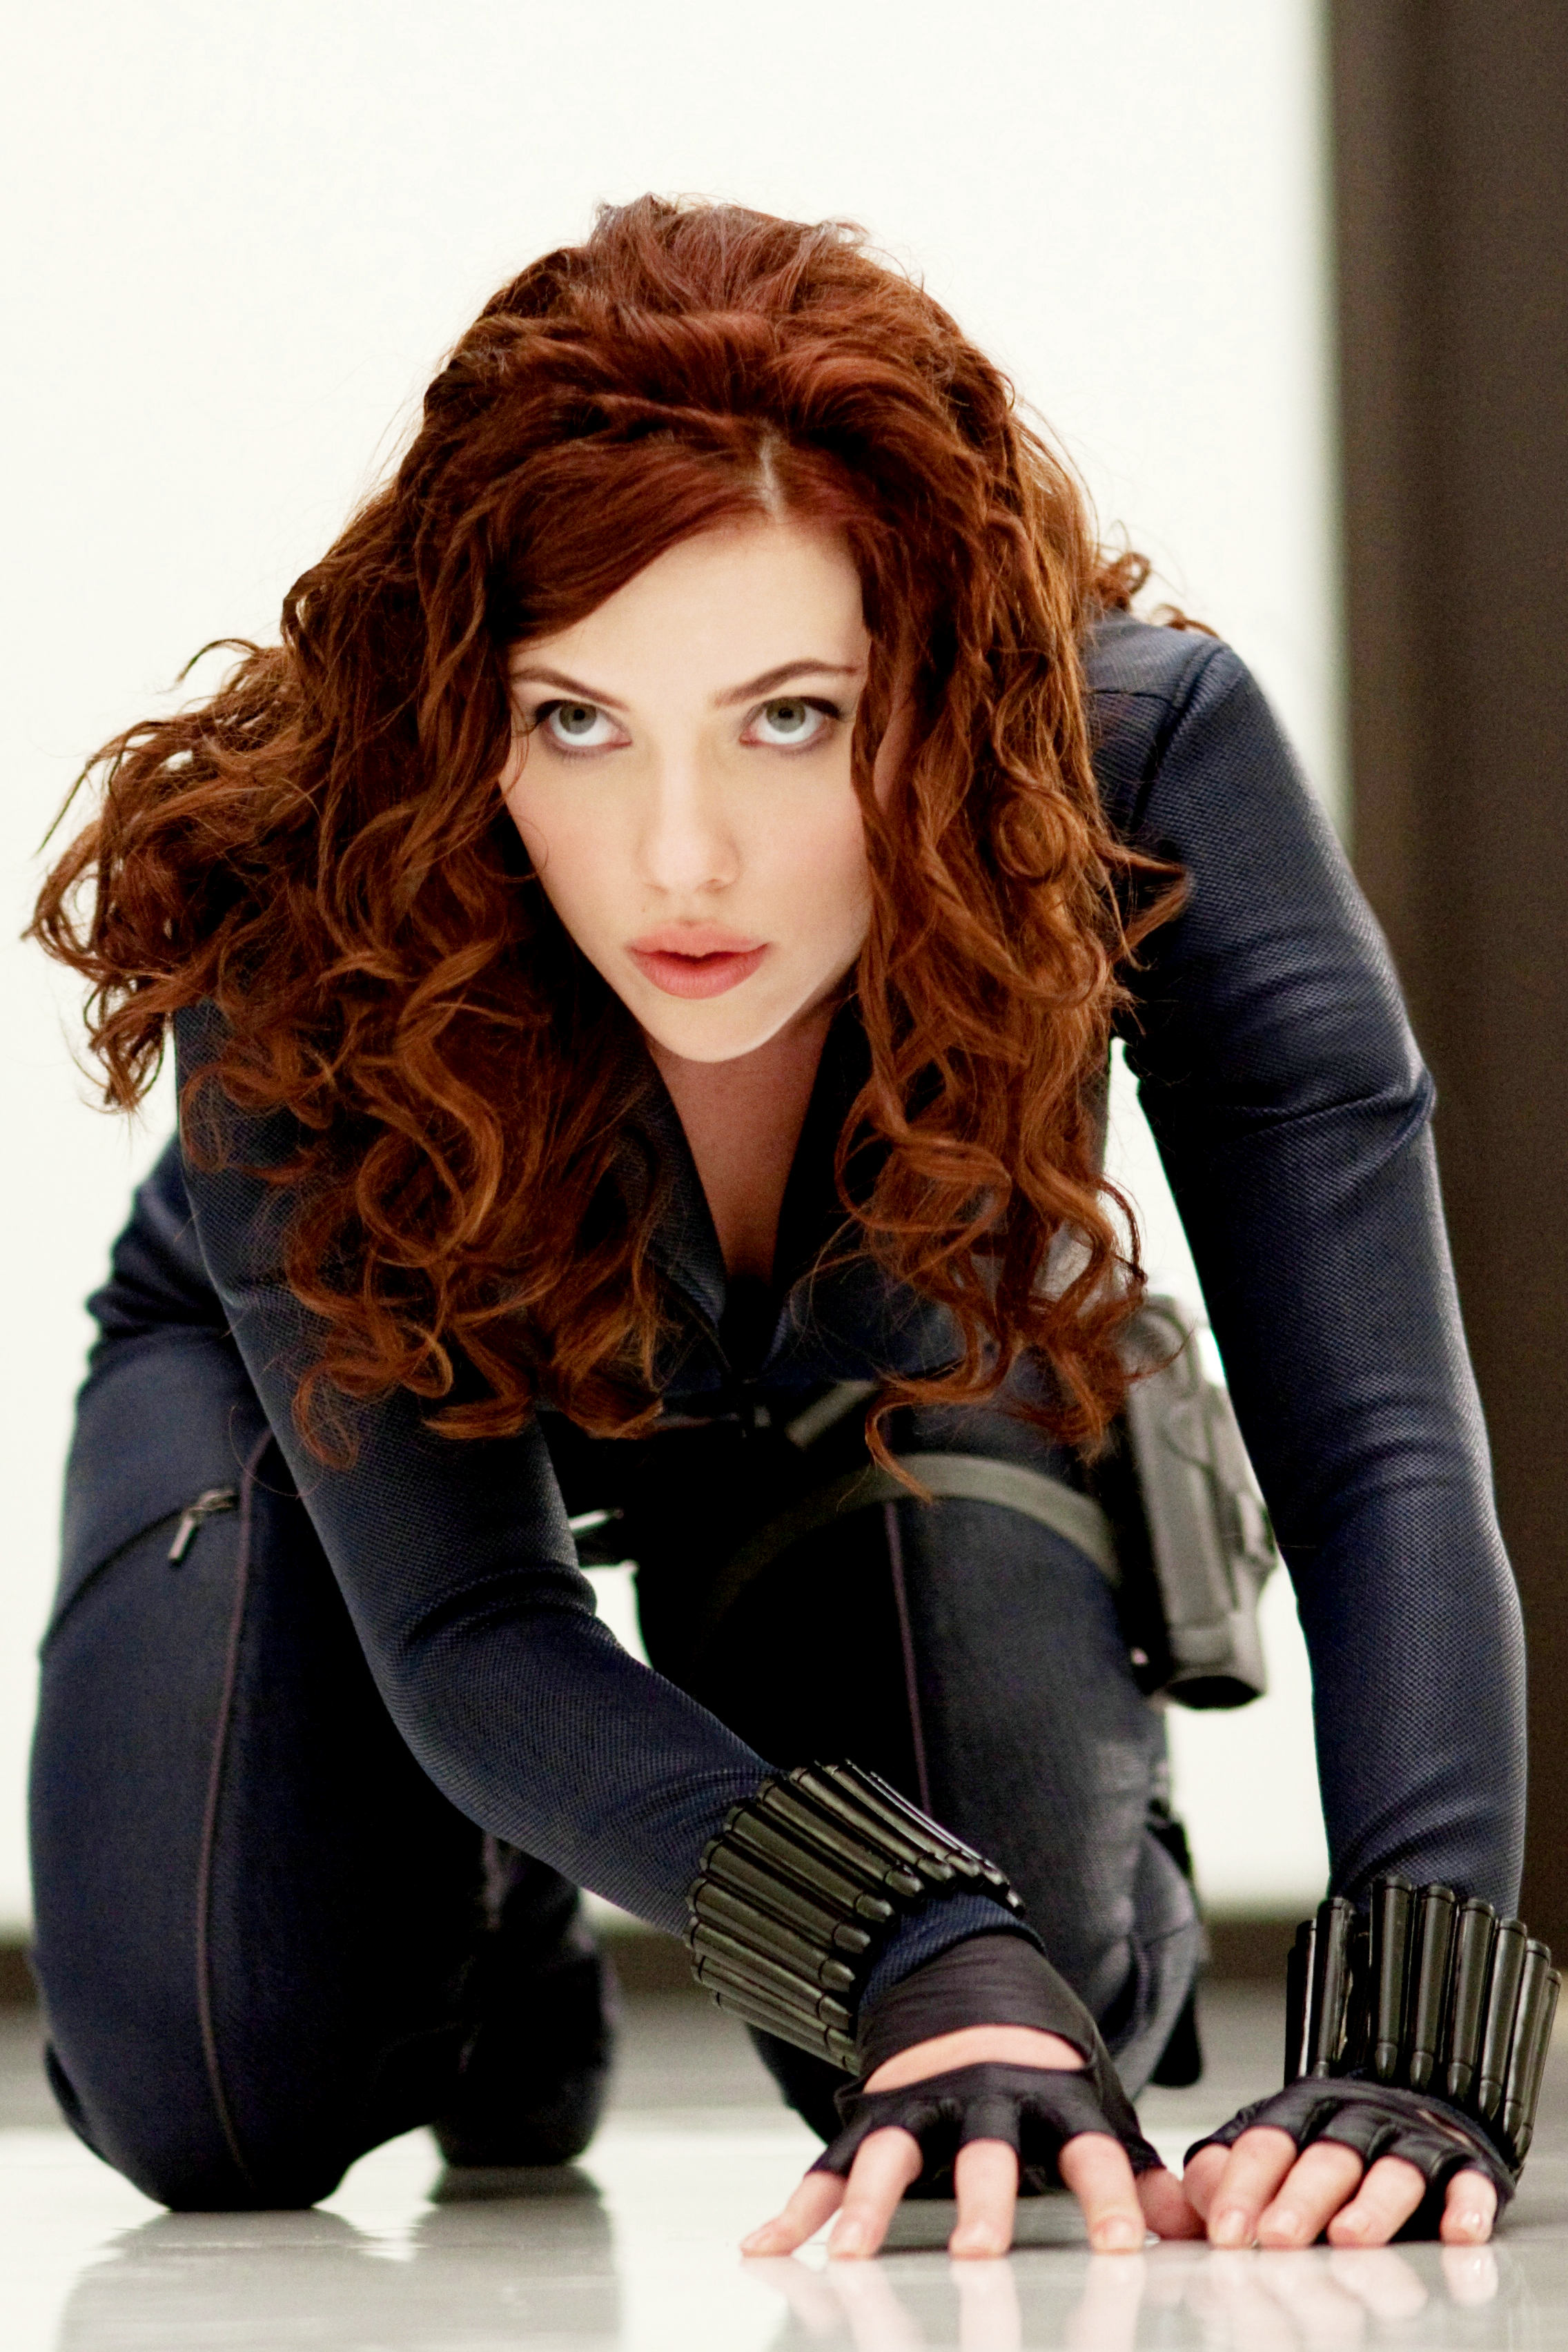 PHOTOS Scarlett Johansson Black Widow movie posters in a ...